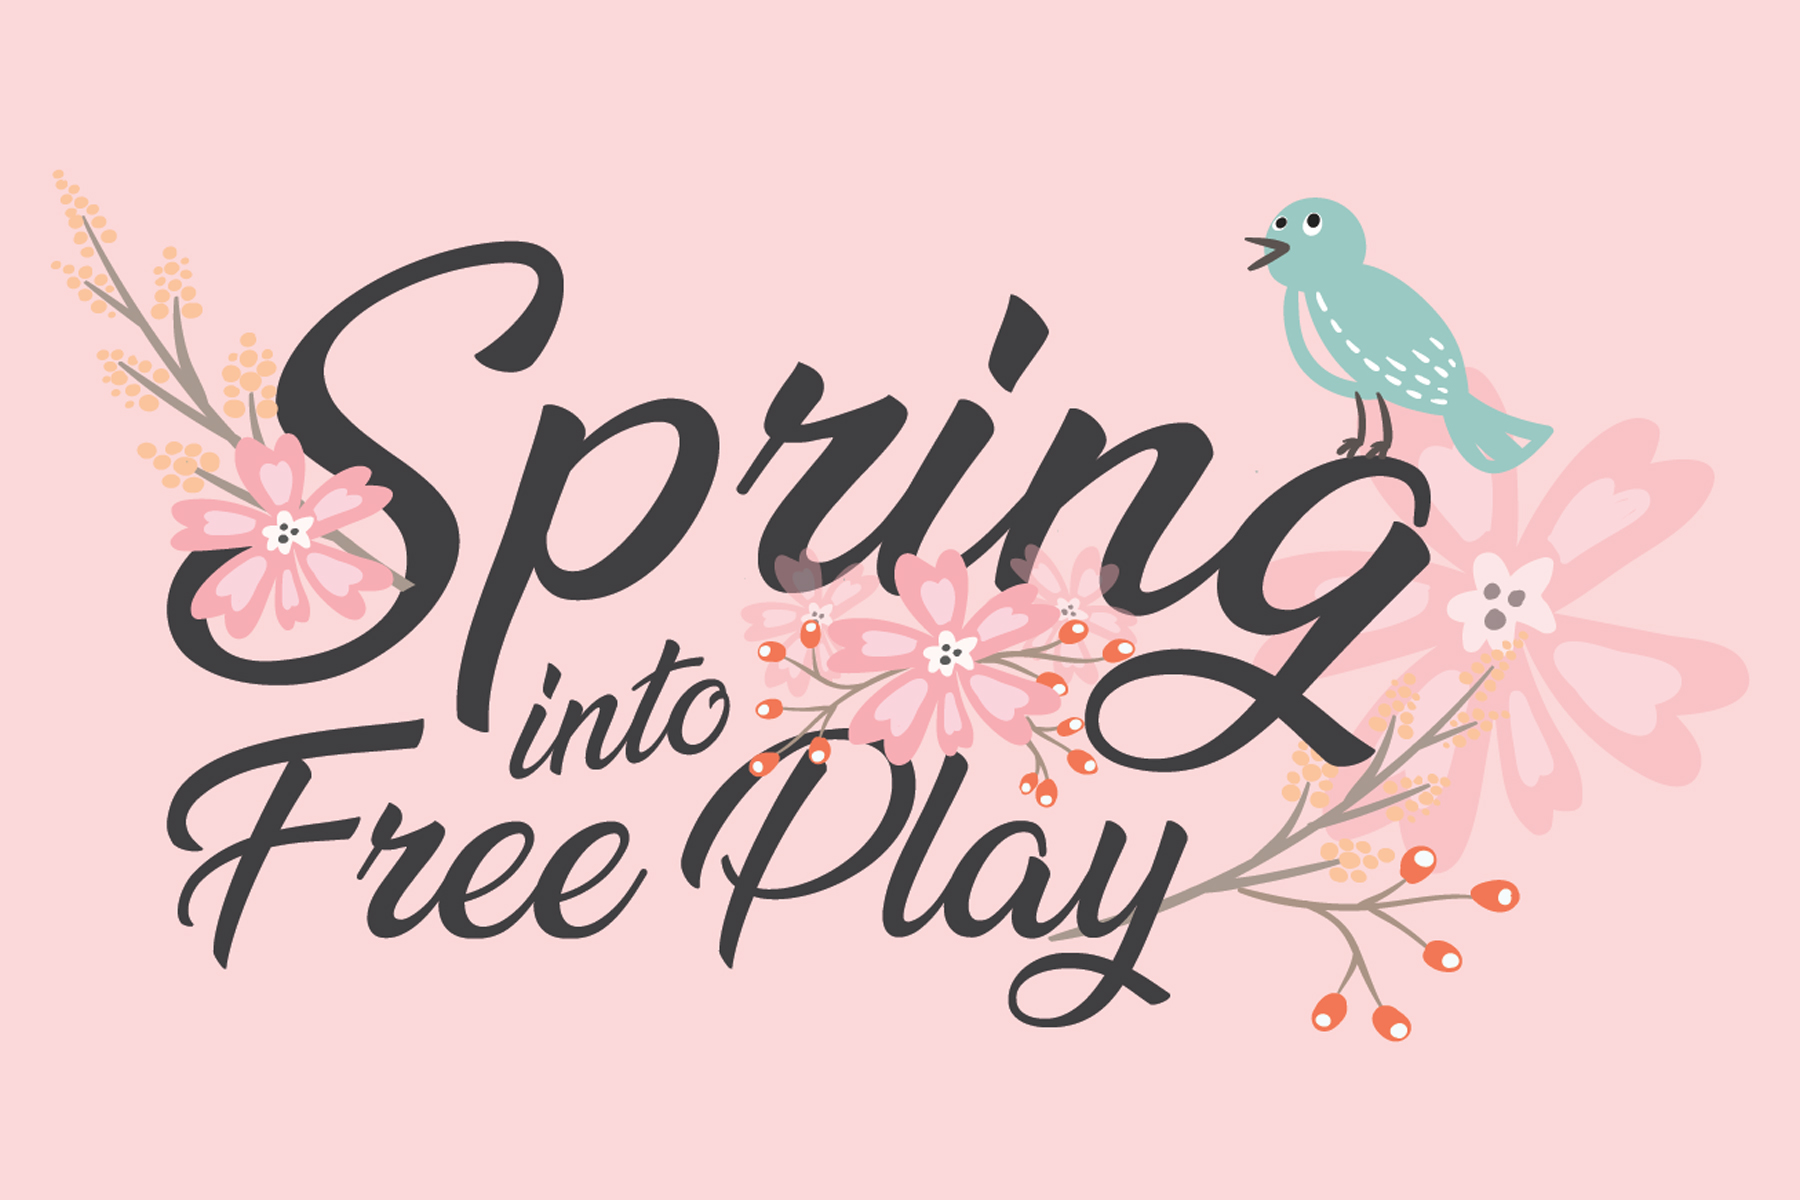 Spring Into Free Play